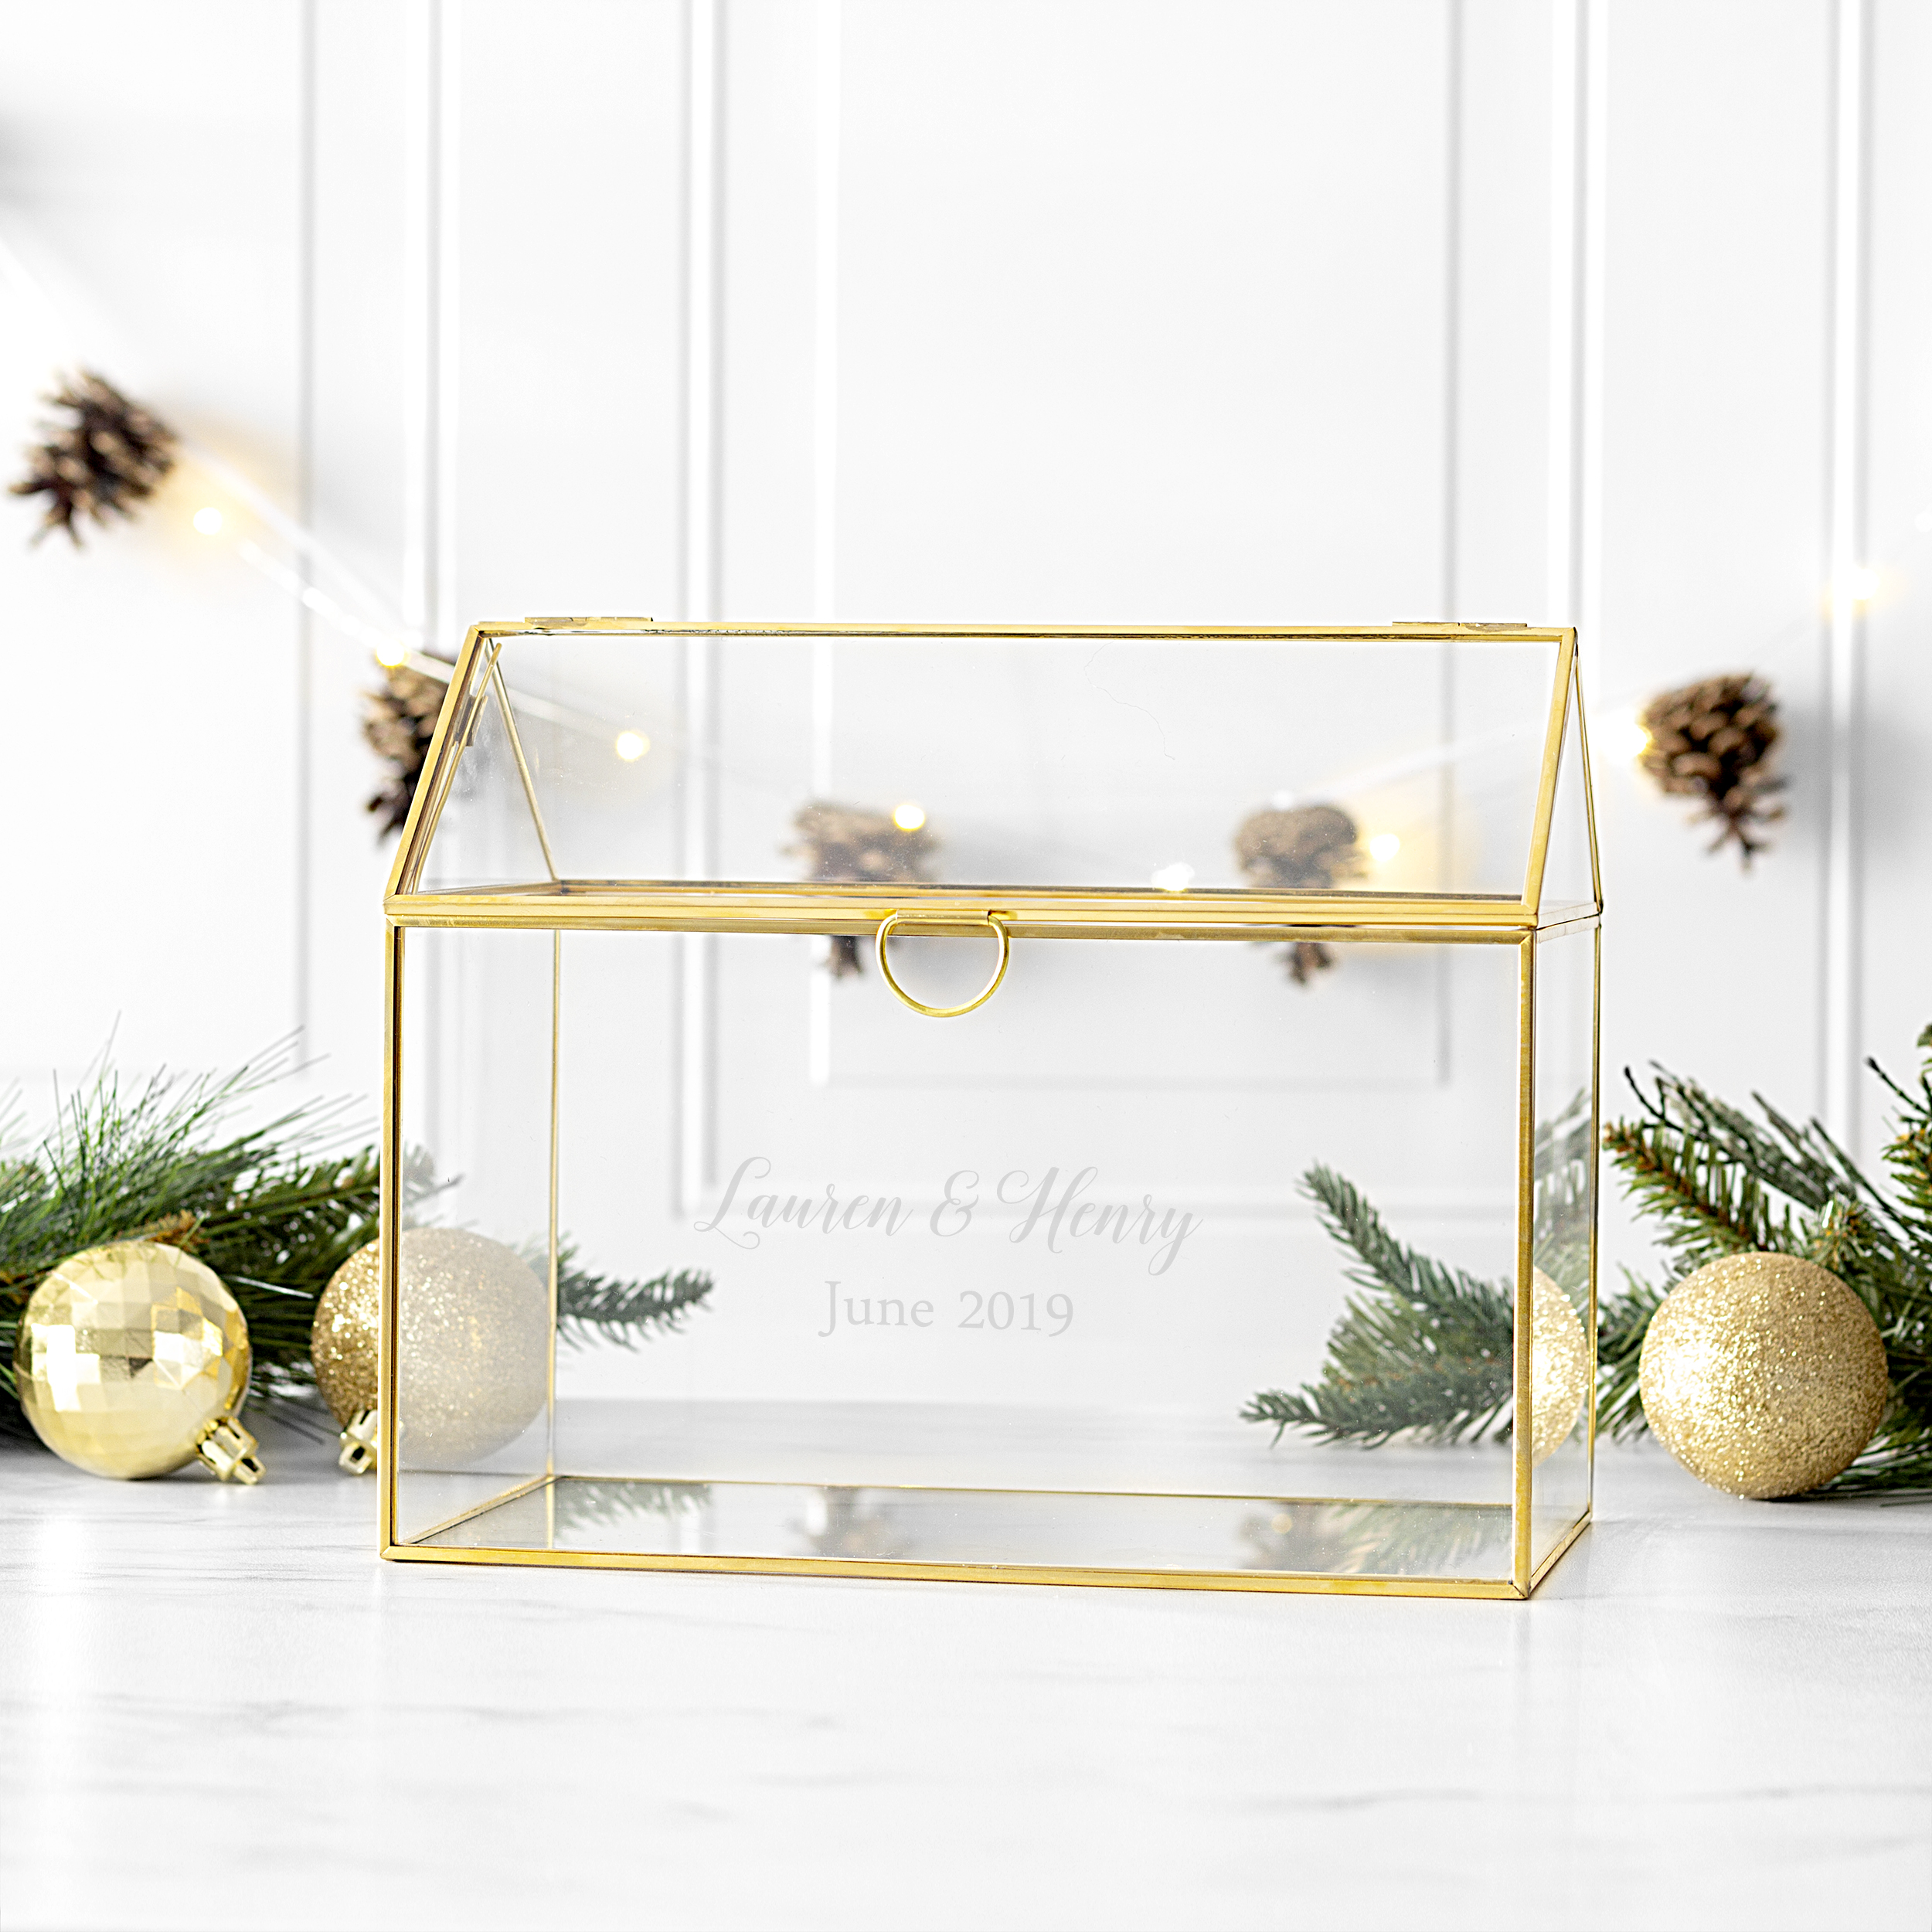 Personalized Glass Wedding Gift Card Holder, Gold